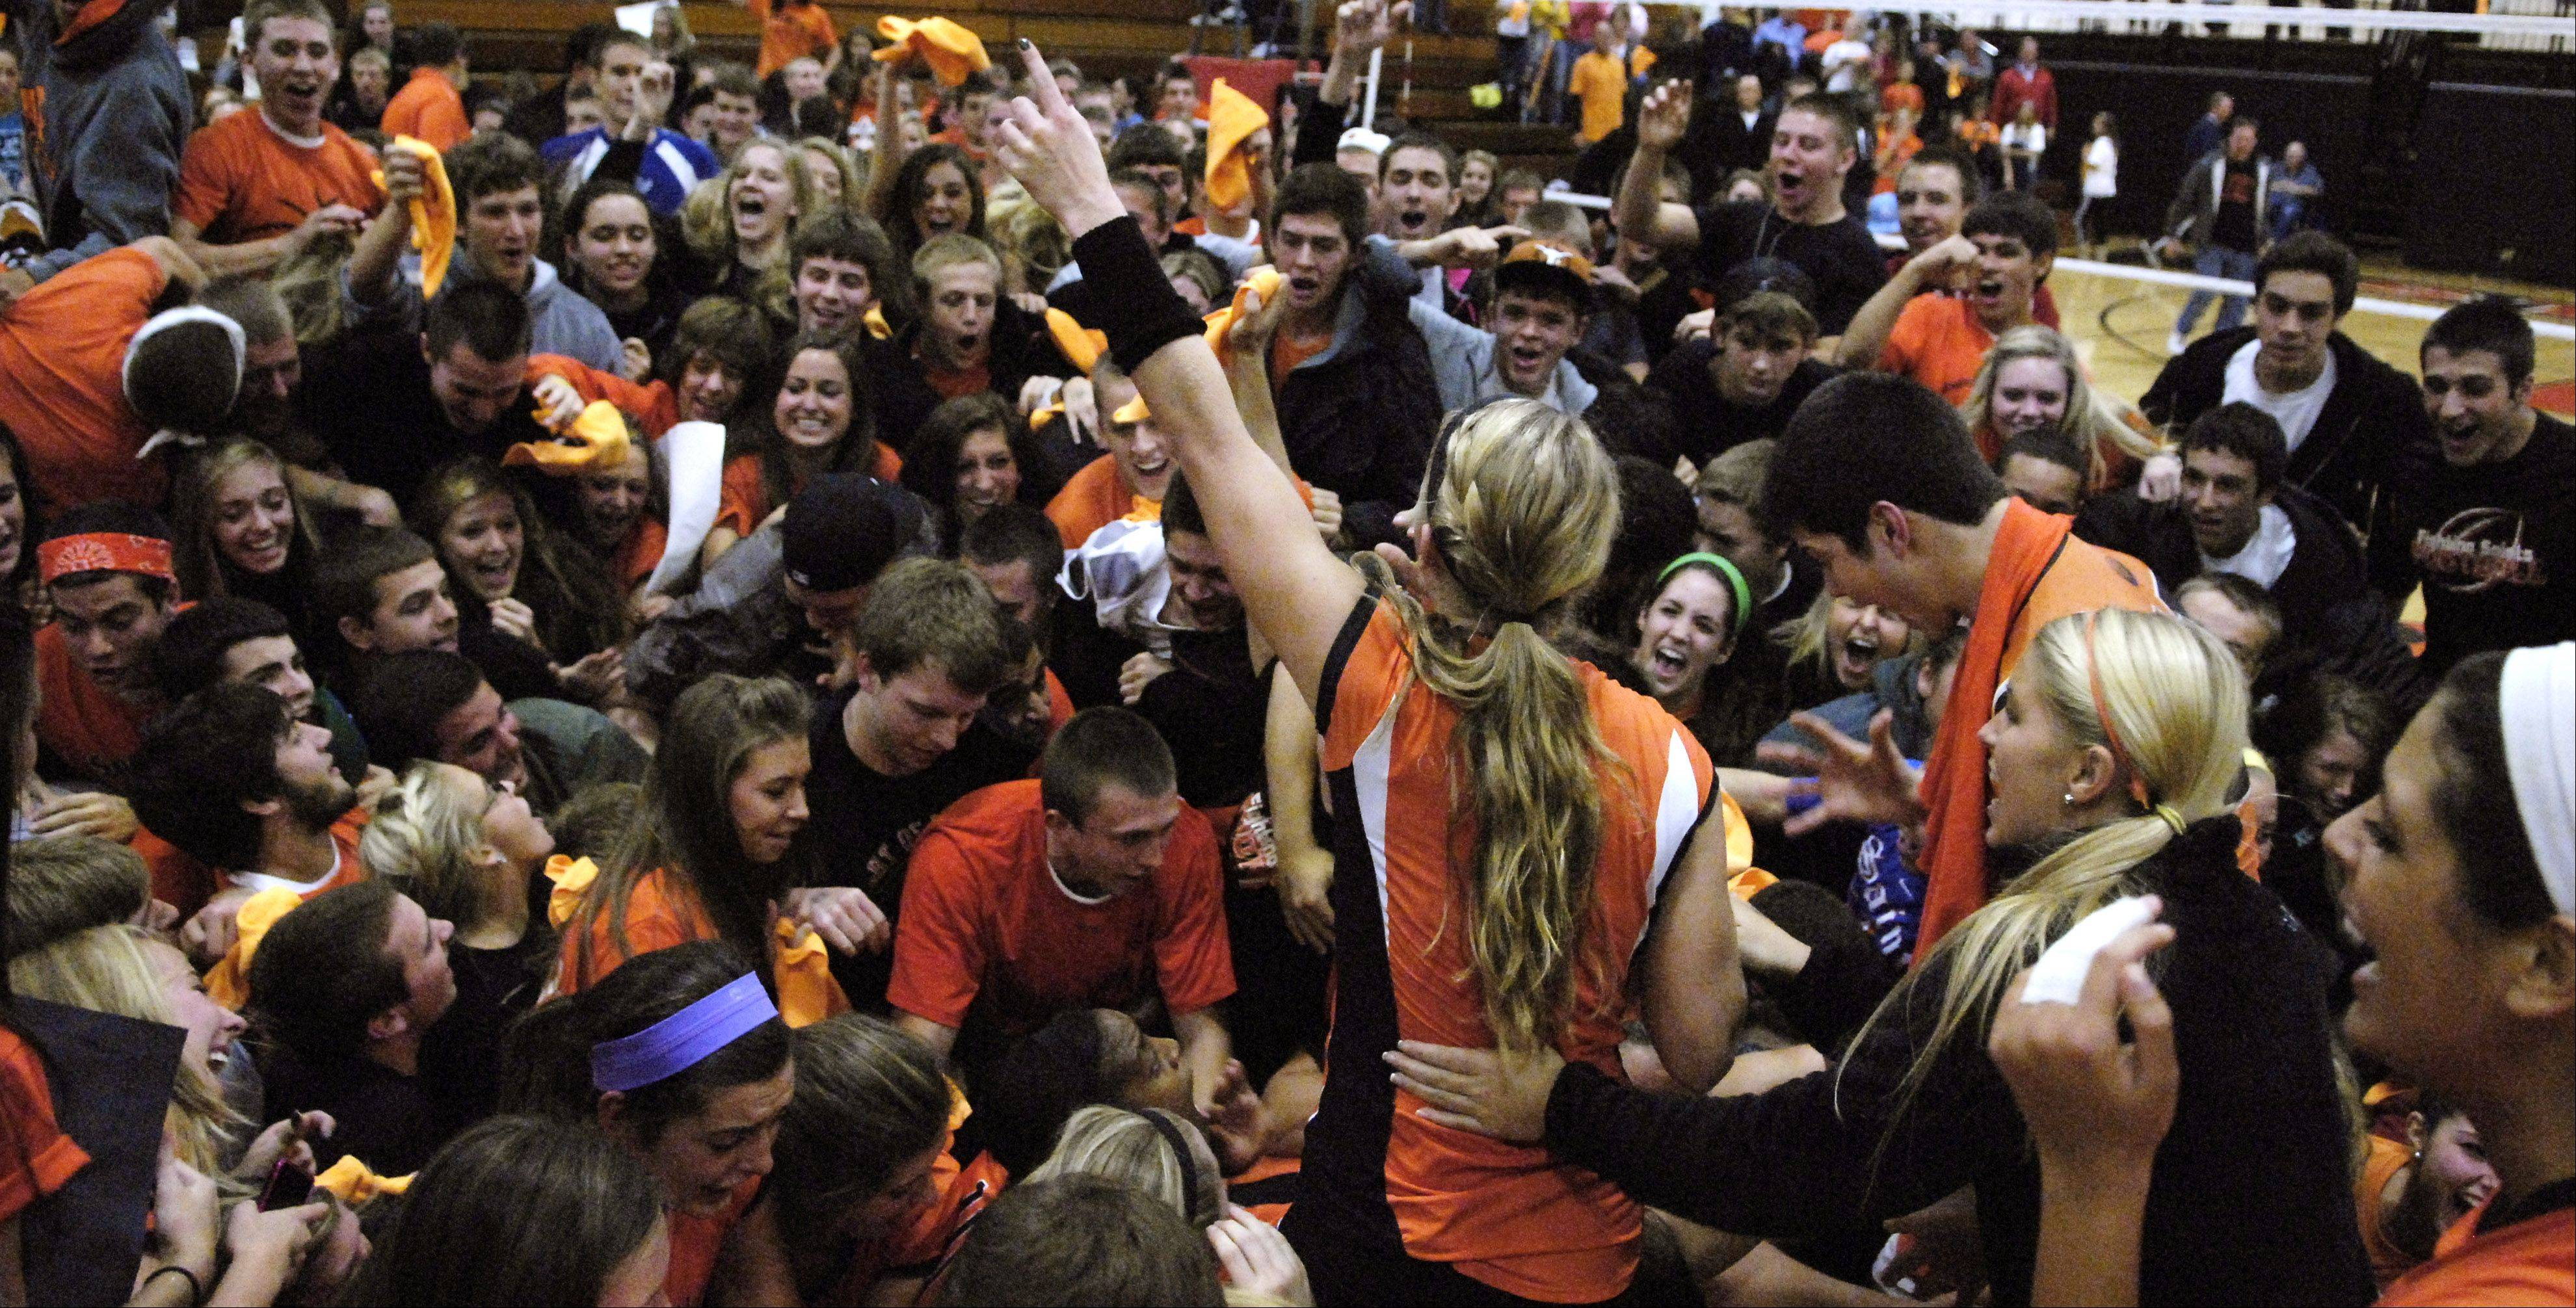 St. Charles East students flood the court after the Saints won Thursday's sectional final against York in St. Charles.